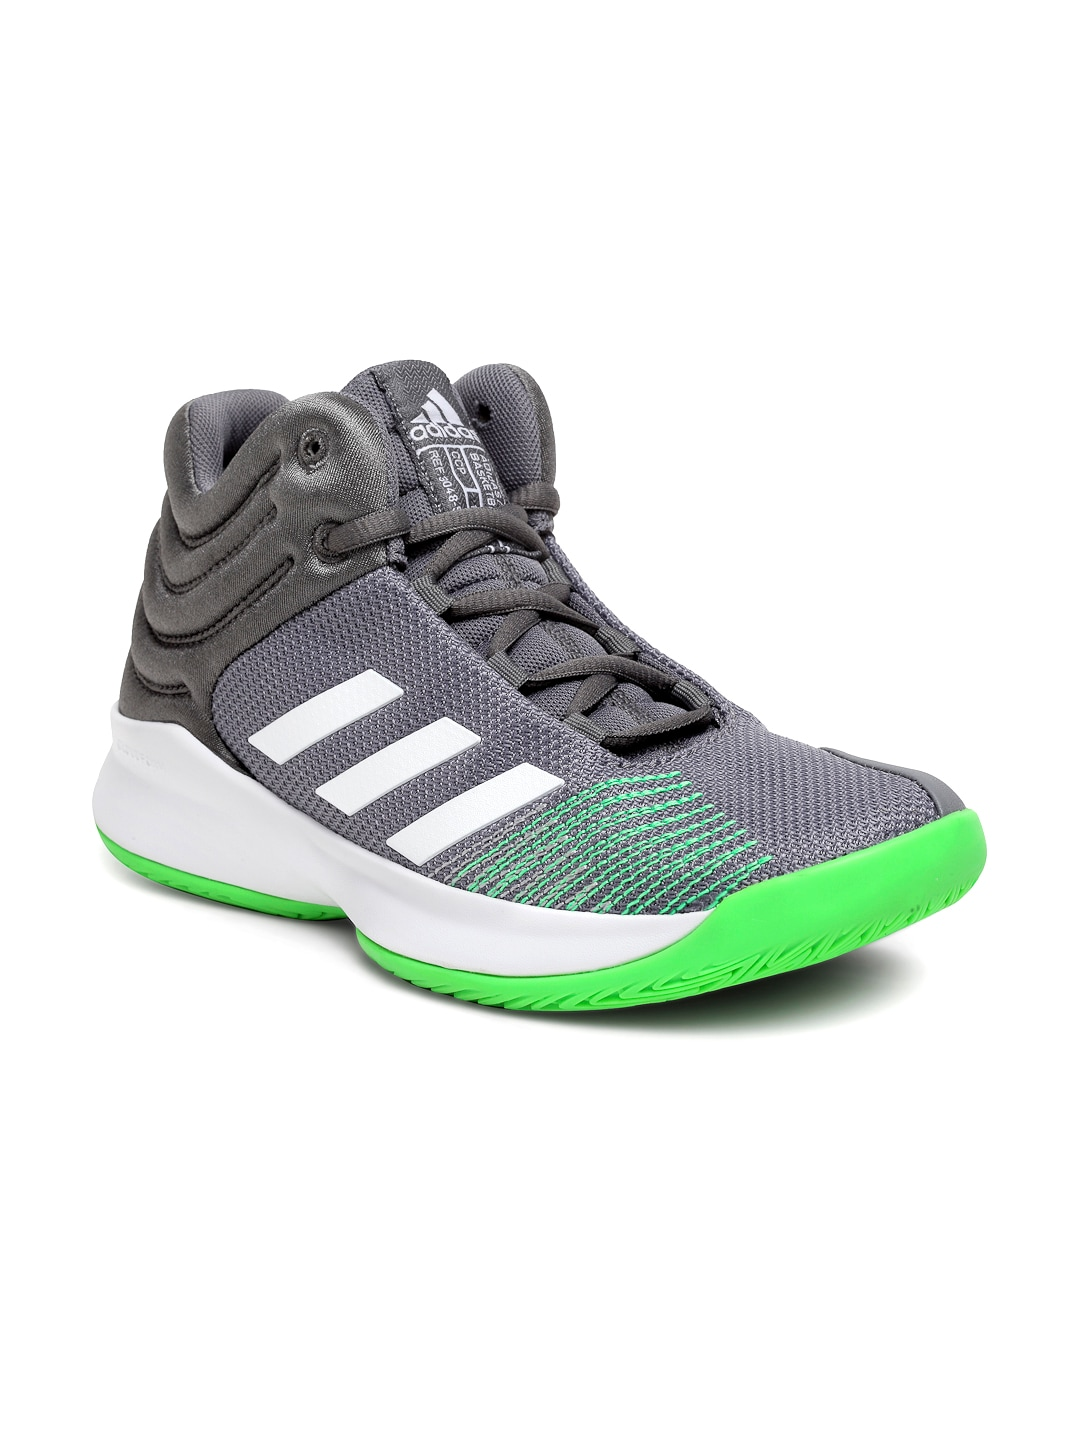 best sneakers c1f21 40ce3 Buy ADIDAS Kids Black  Purple Crazy Heat J Basketball Shoes